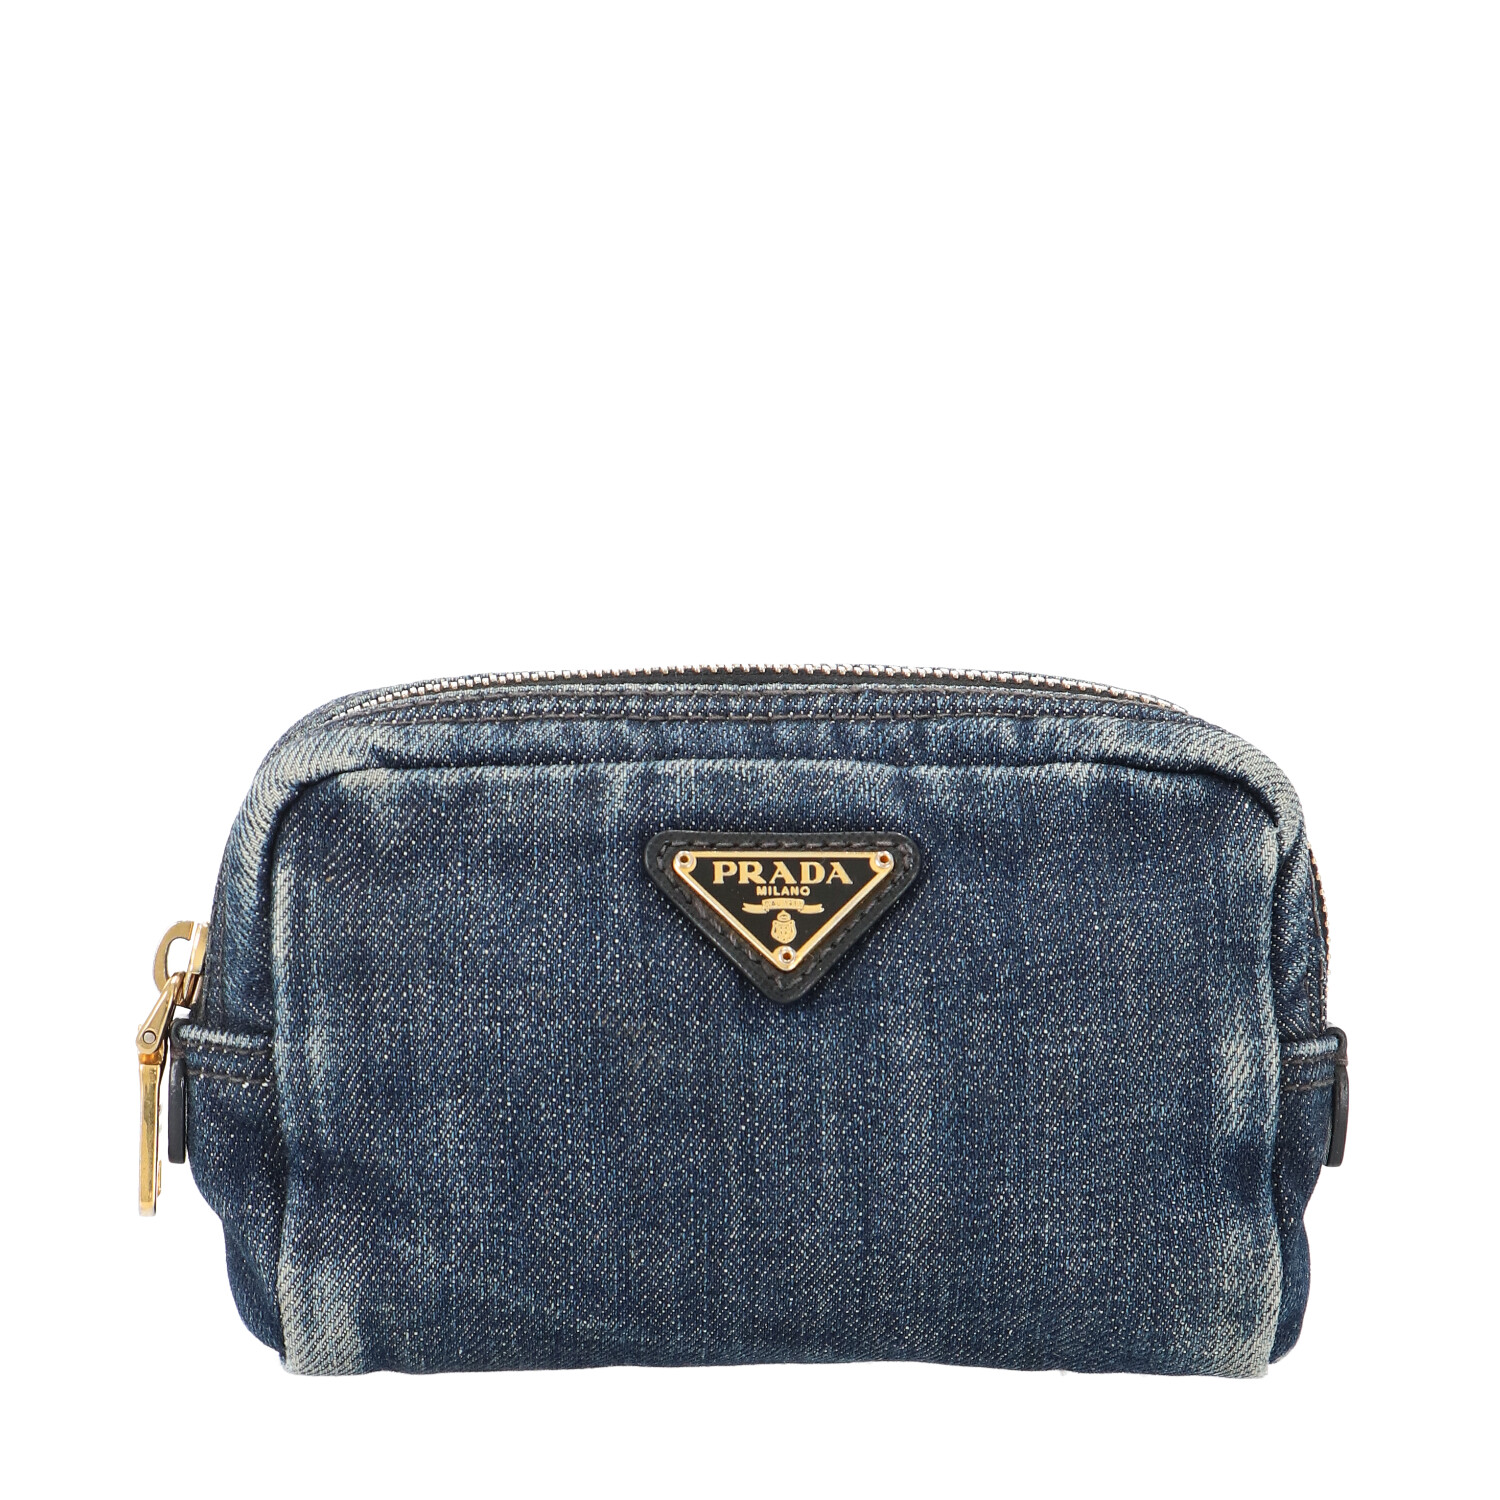 Prada Blue Canvas Cosmetic Pouch